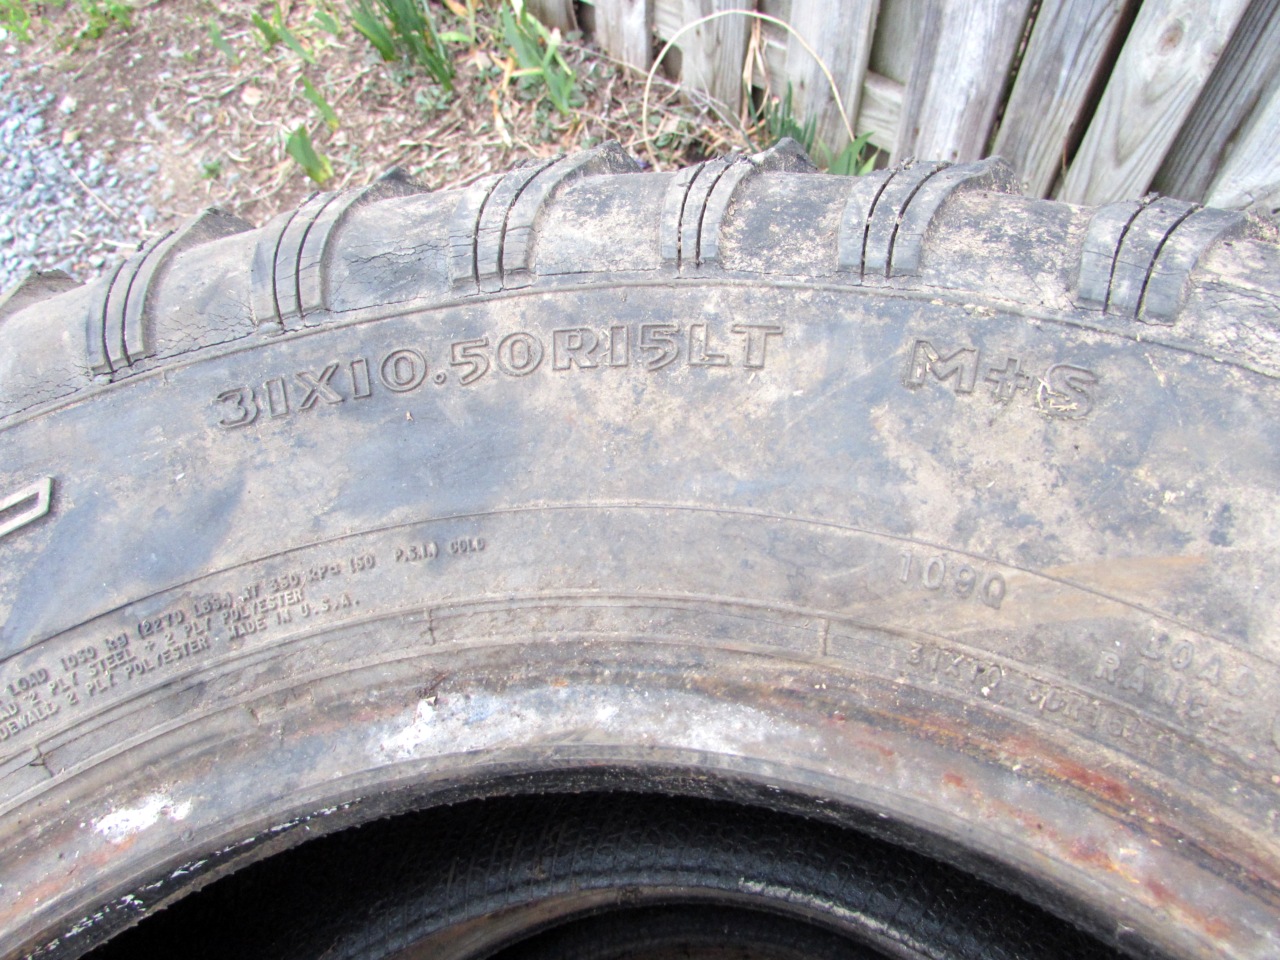 Mud Tires 007 of 10.png